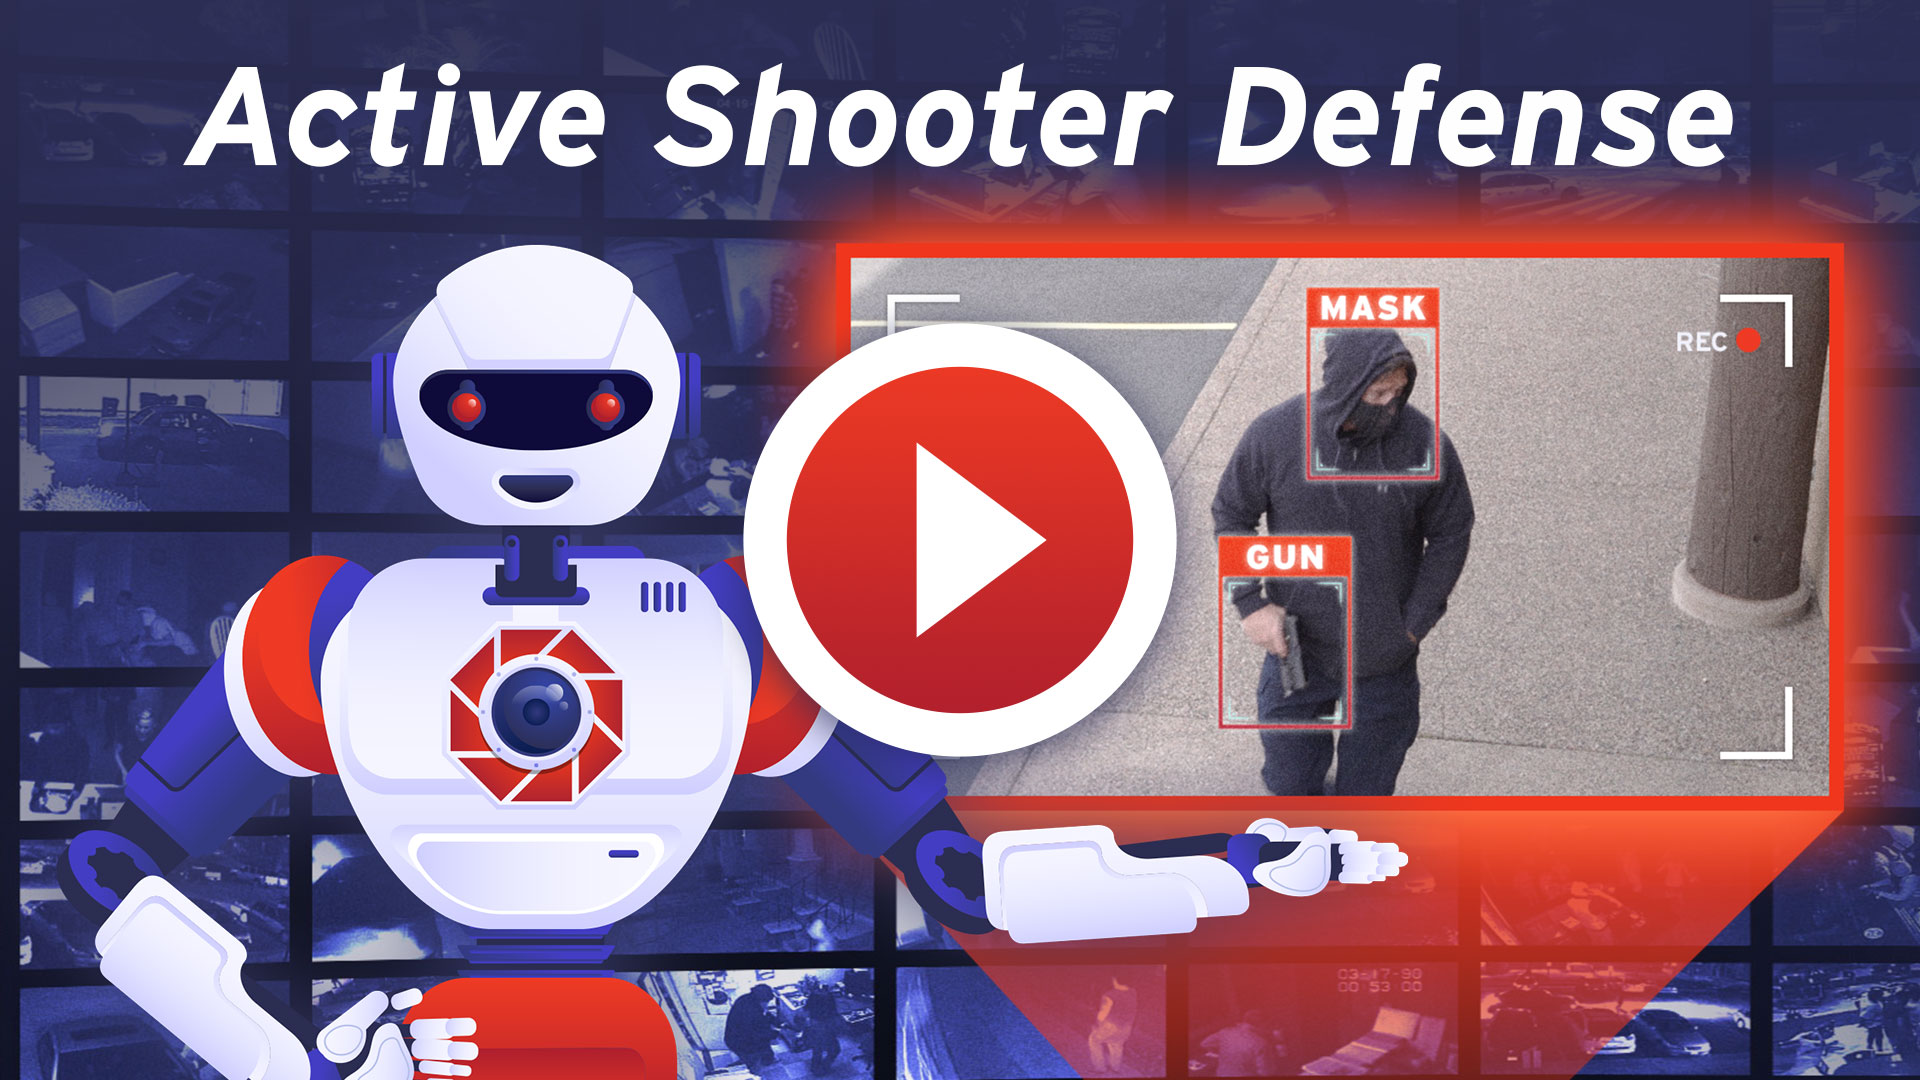 Active Shooter Defense - Defendry protection against active shooters